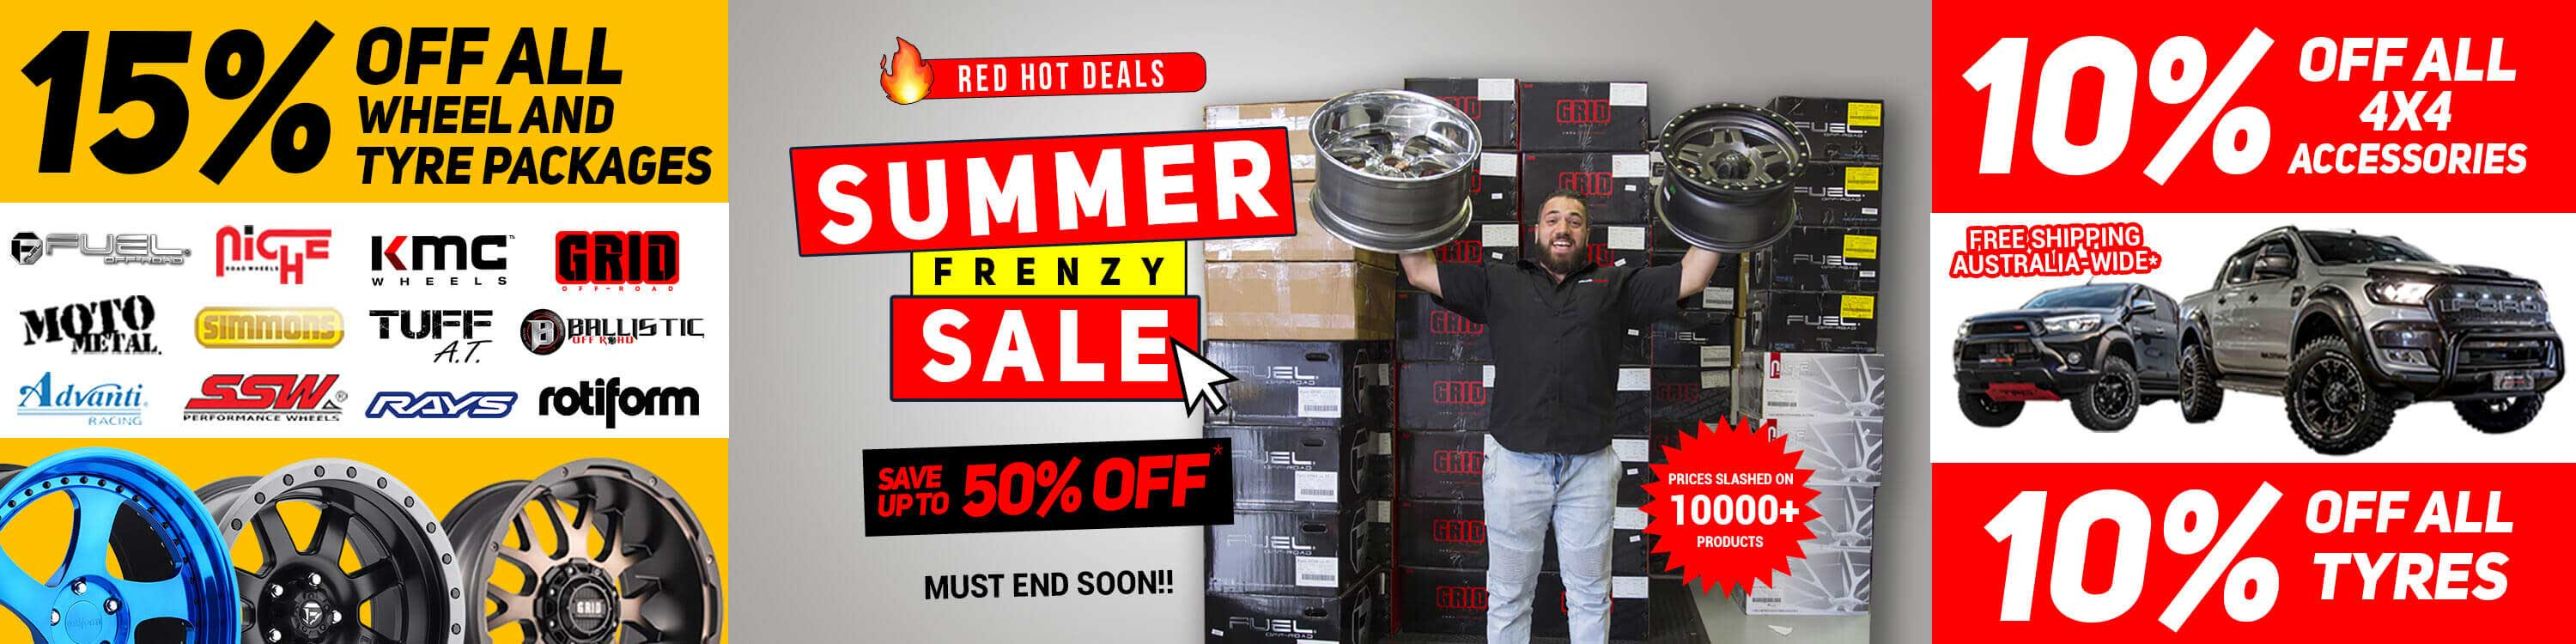 Save 15% for all wheel packages   Autocraze